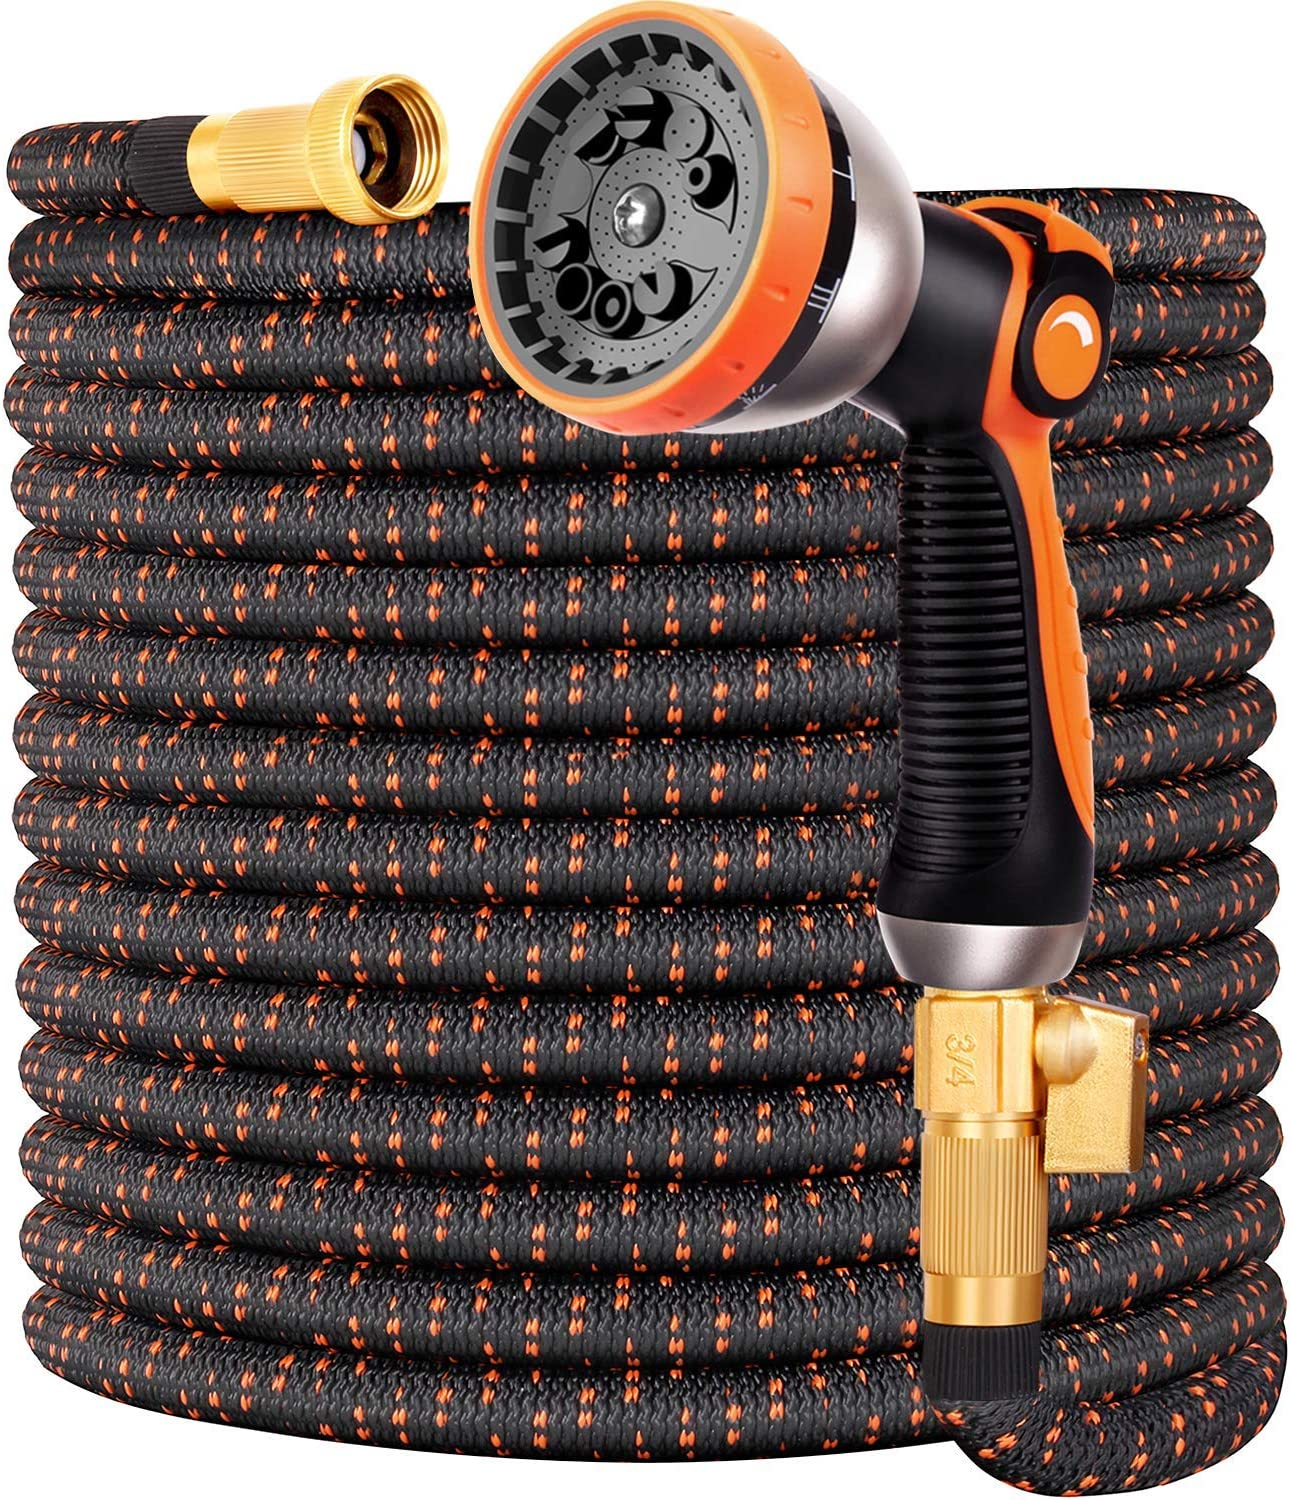 100FT Expandable Garden Hose, No-Kink Flexible Water Hose, 3/4 Inch Solid Brass Fittings, 9-Function Spray Nozzle